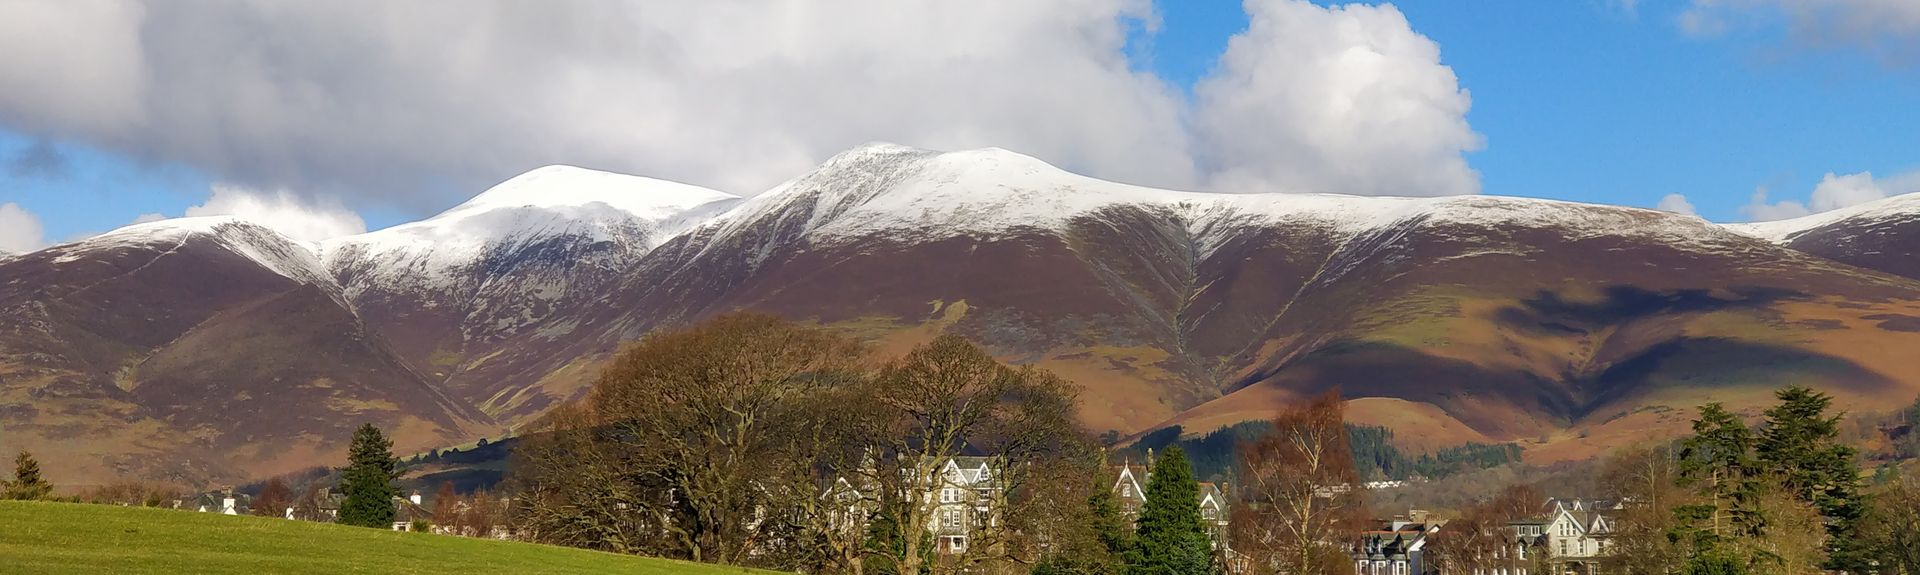 Borrowdale, Keswick, Cumbria, UK